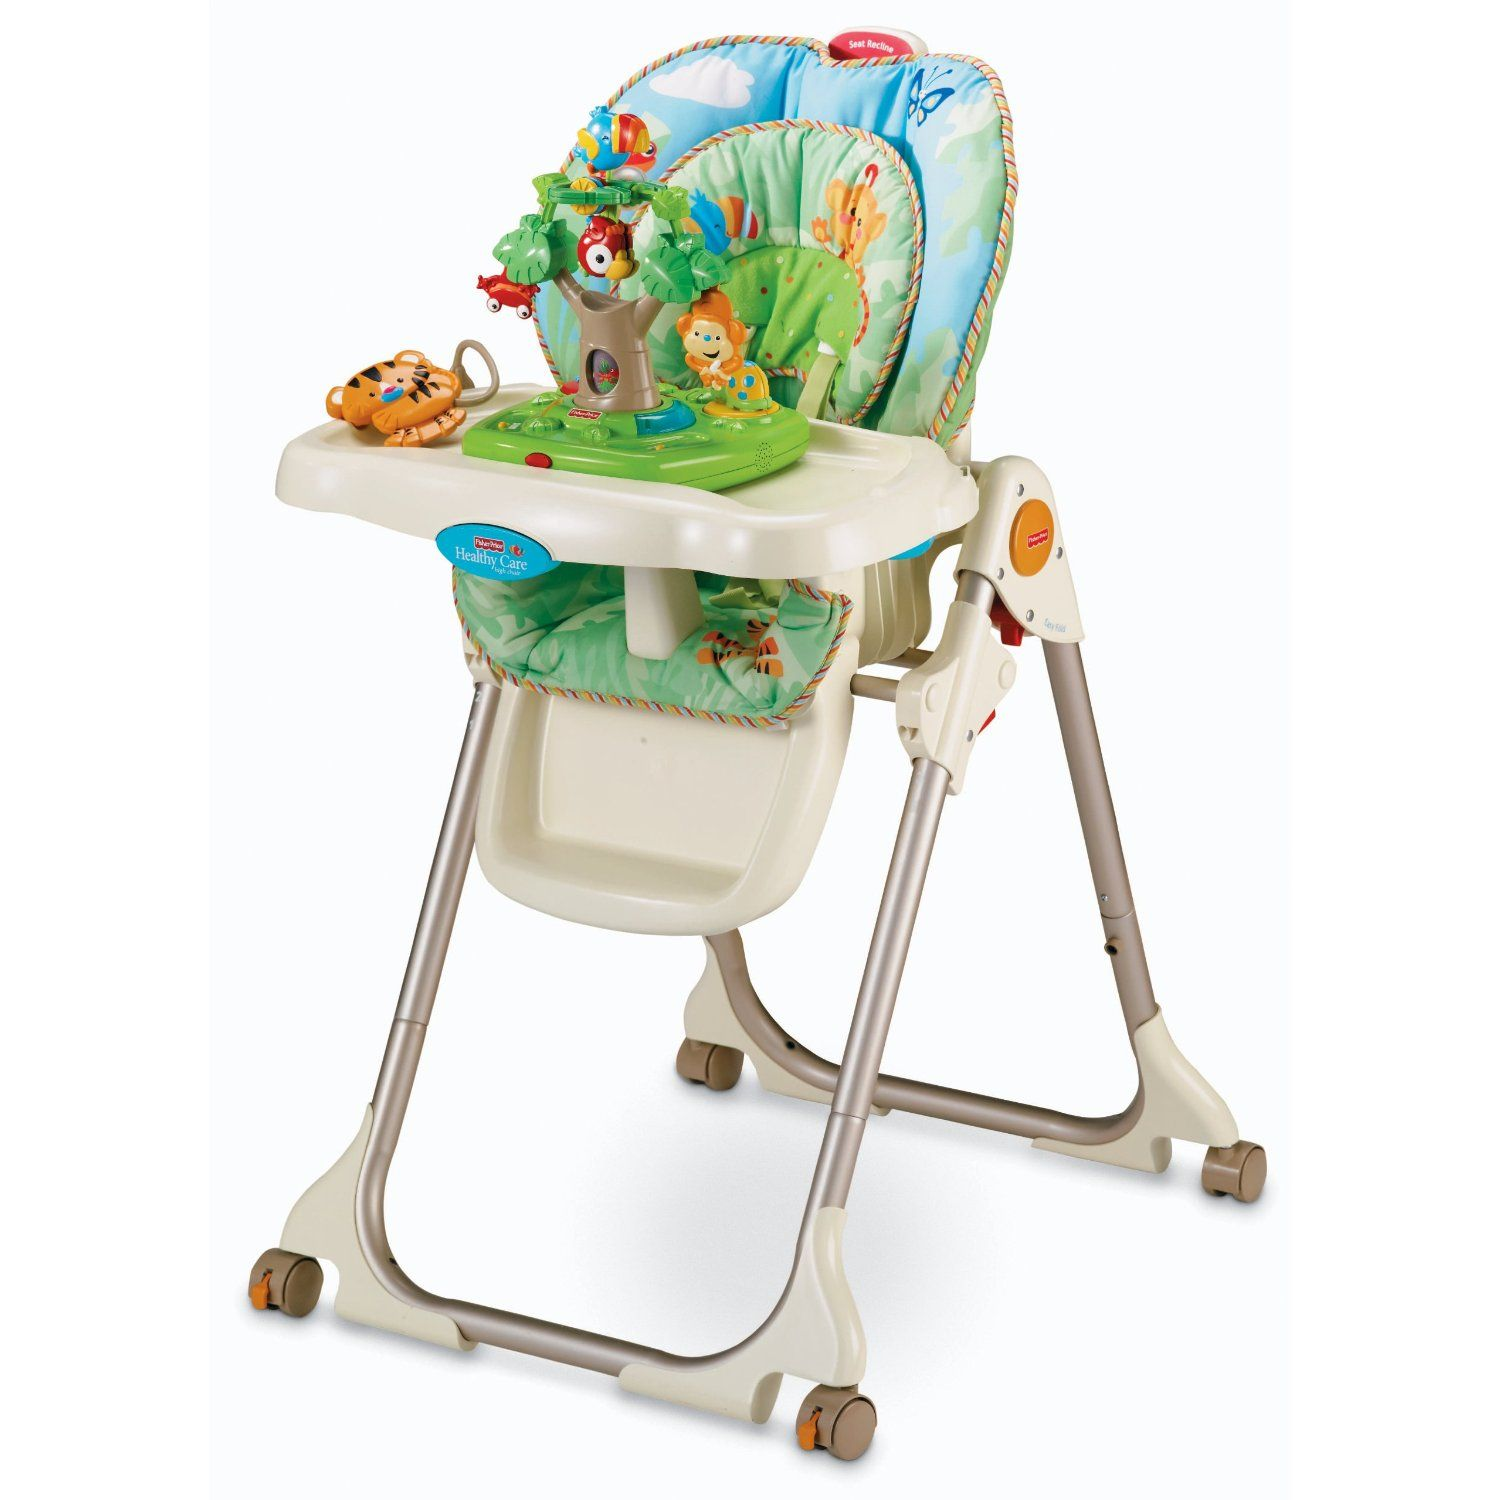 92 Reference Of Portable High Chair Fisher Price En 2020 Chaise Haute Chaise Bebe